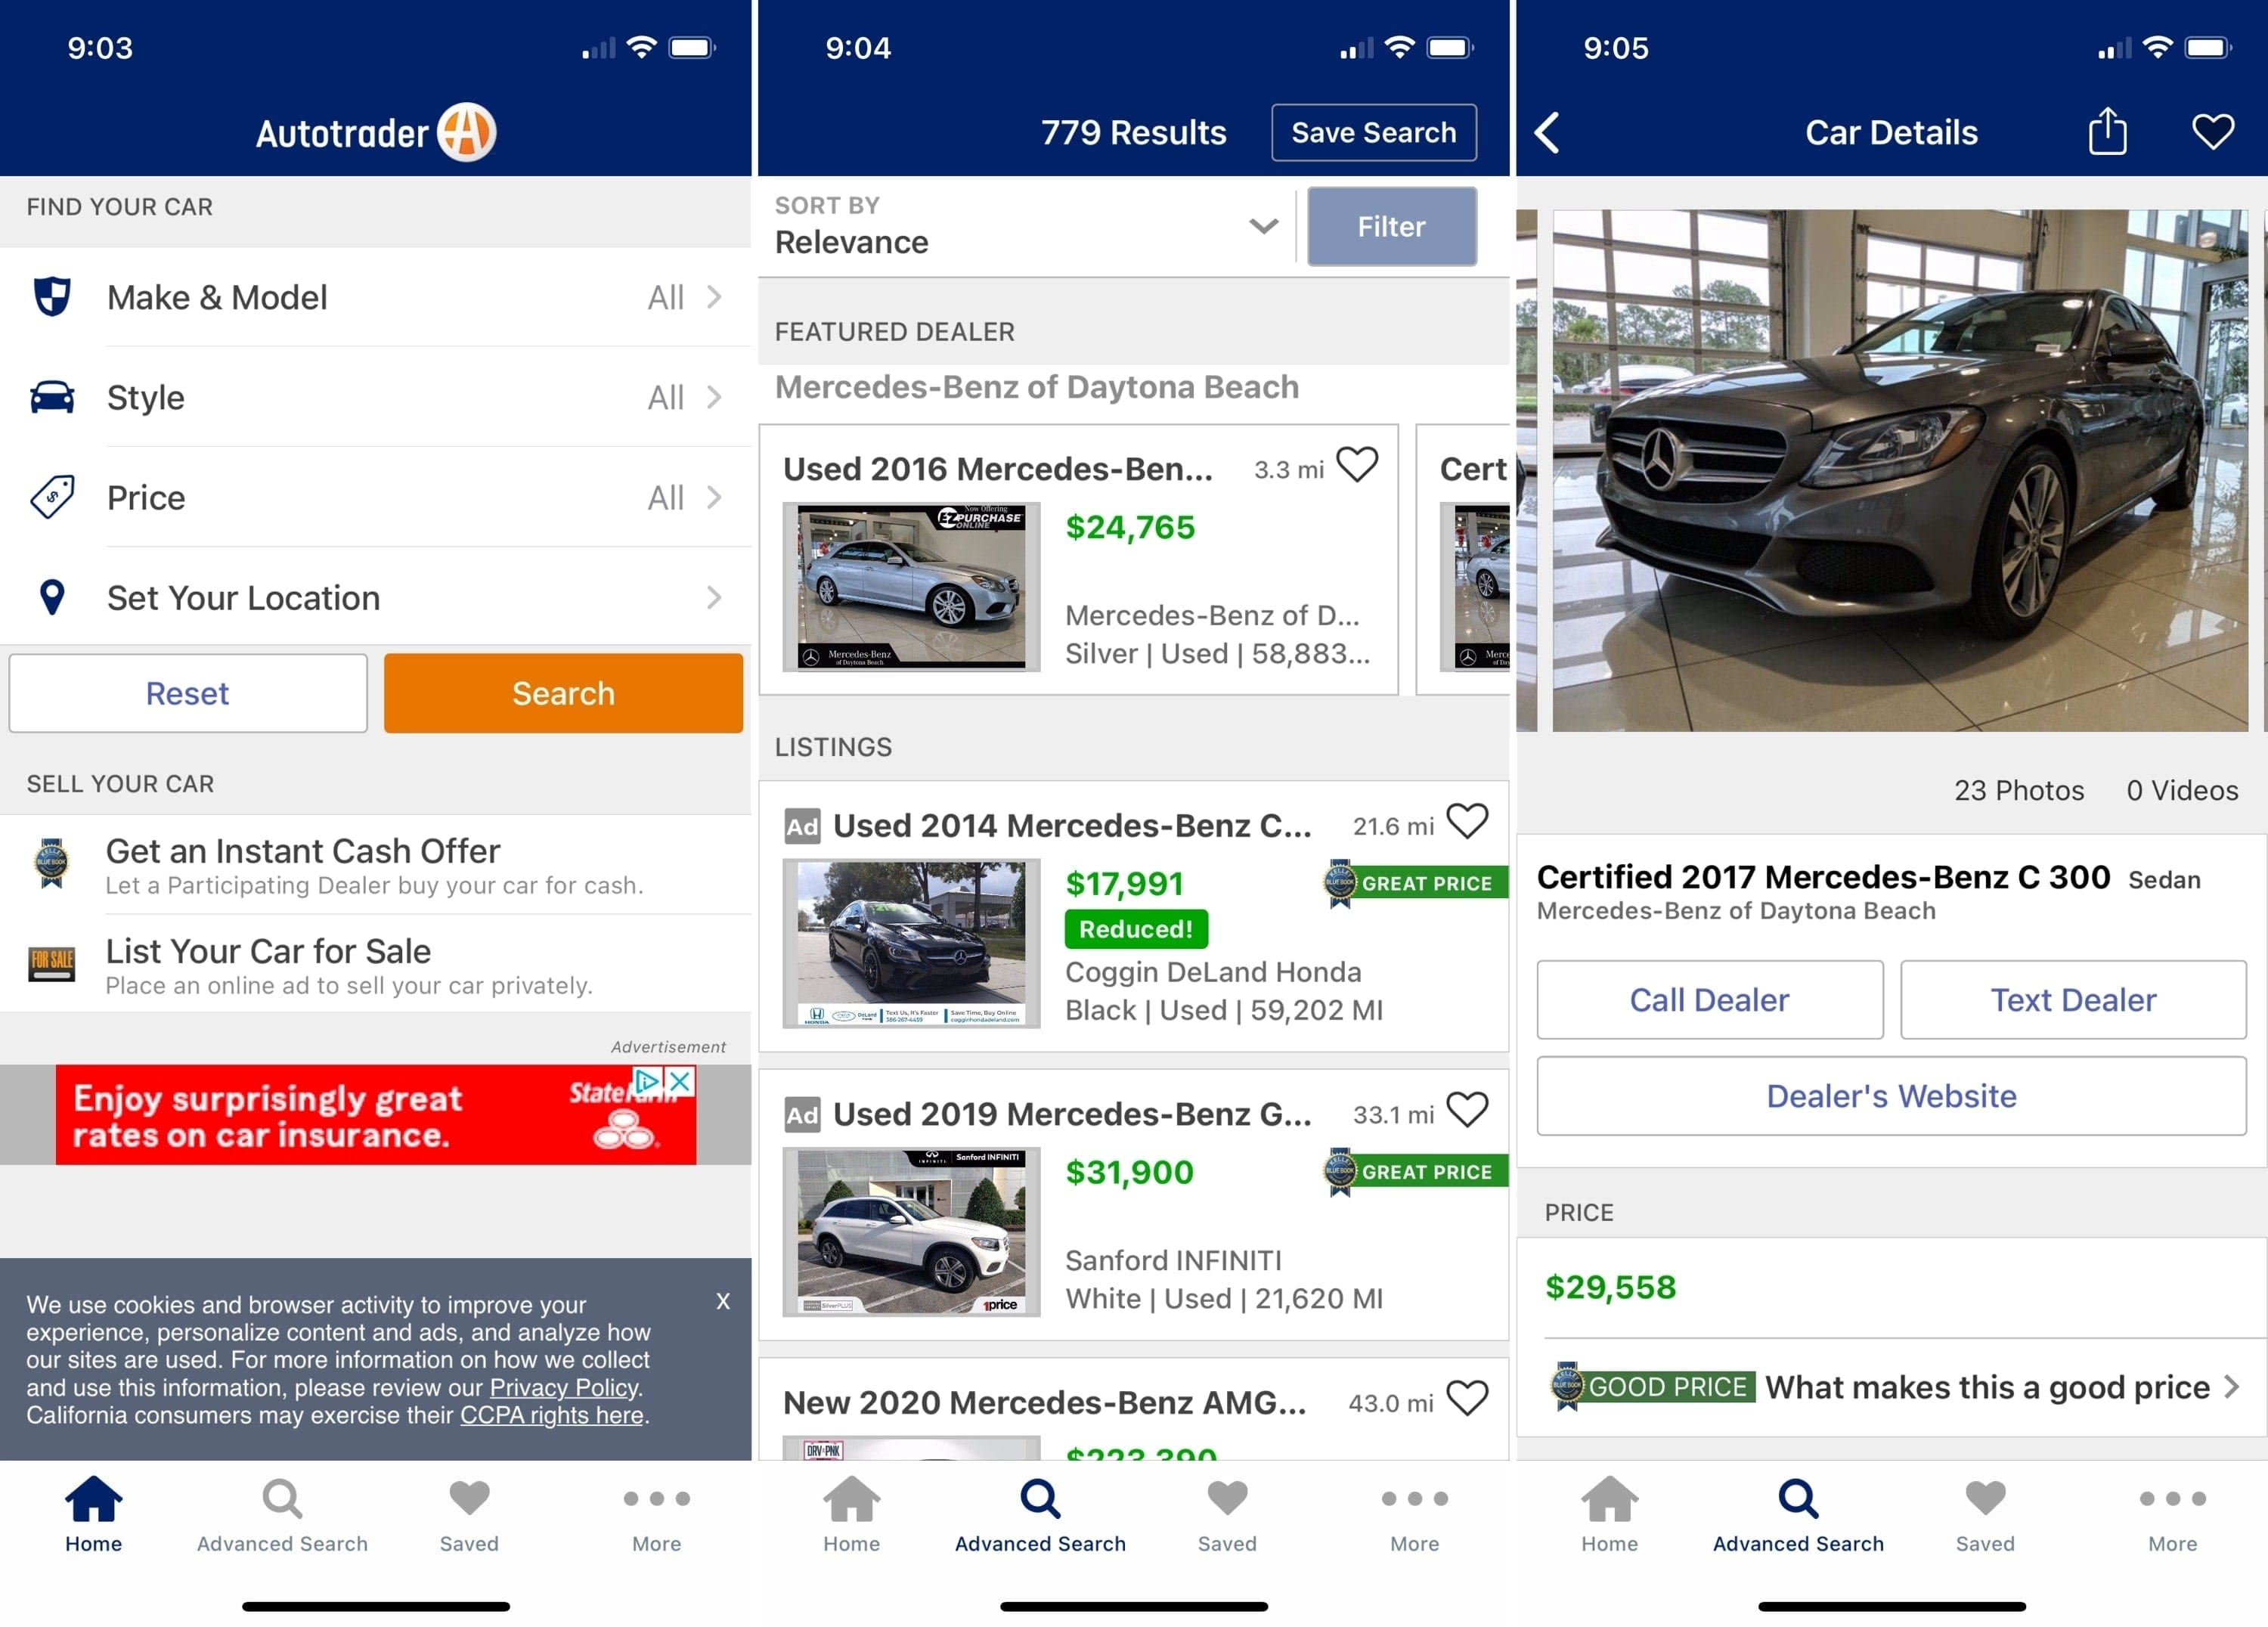 Apps for buying a car - Autotrader on iPhone